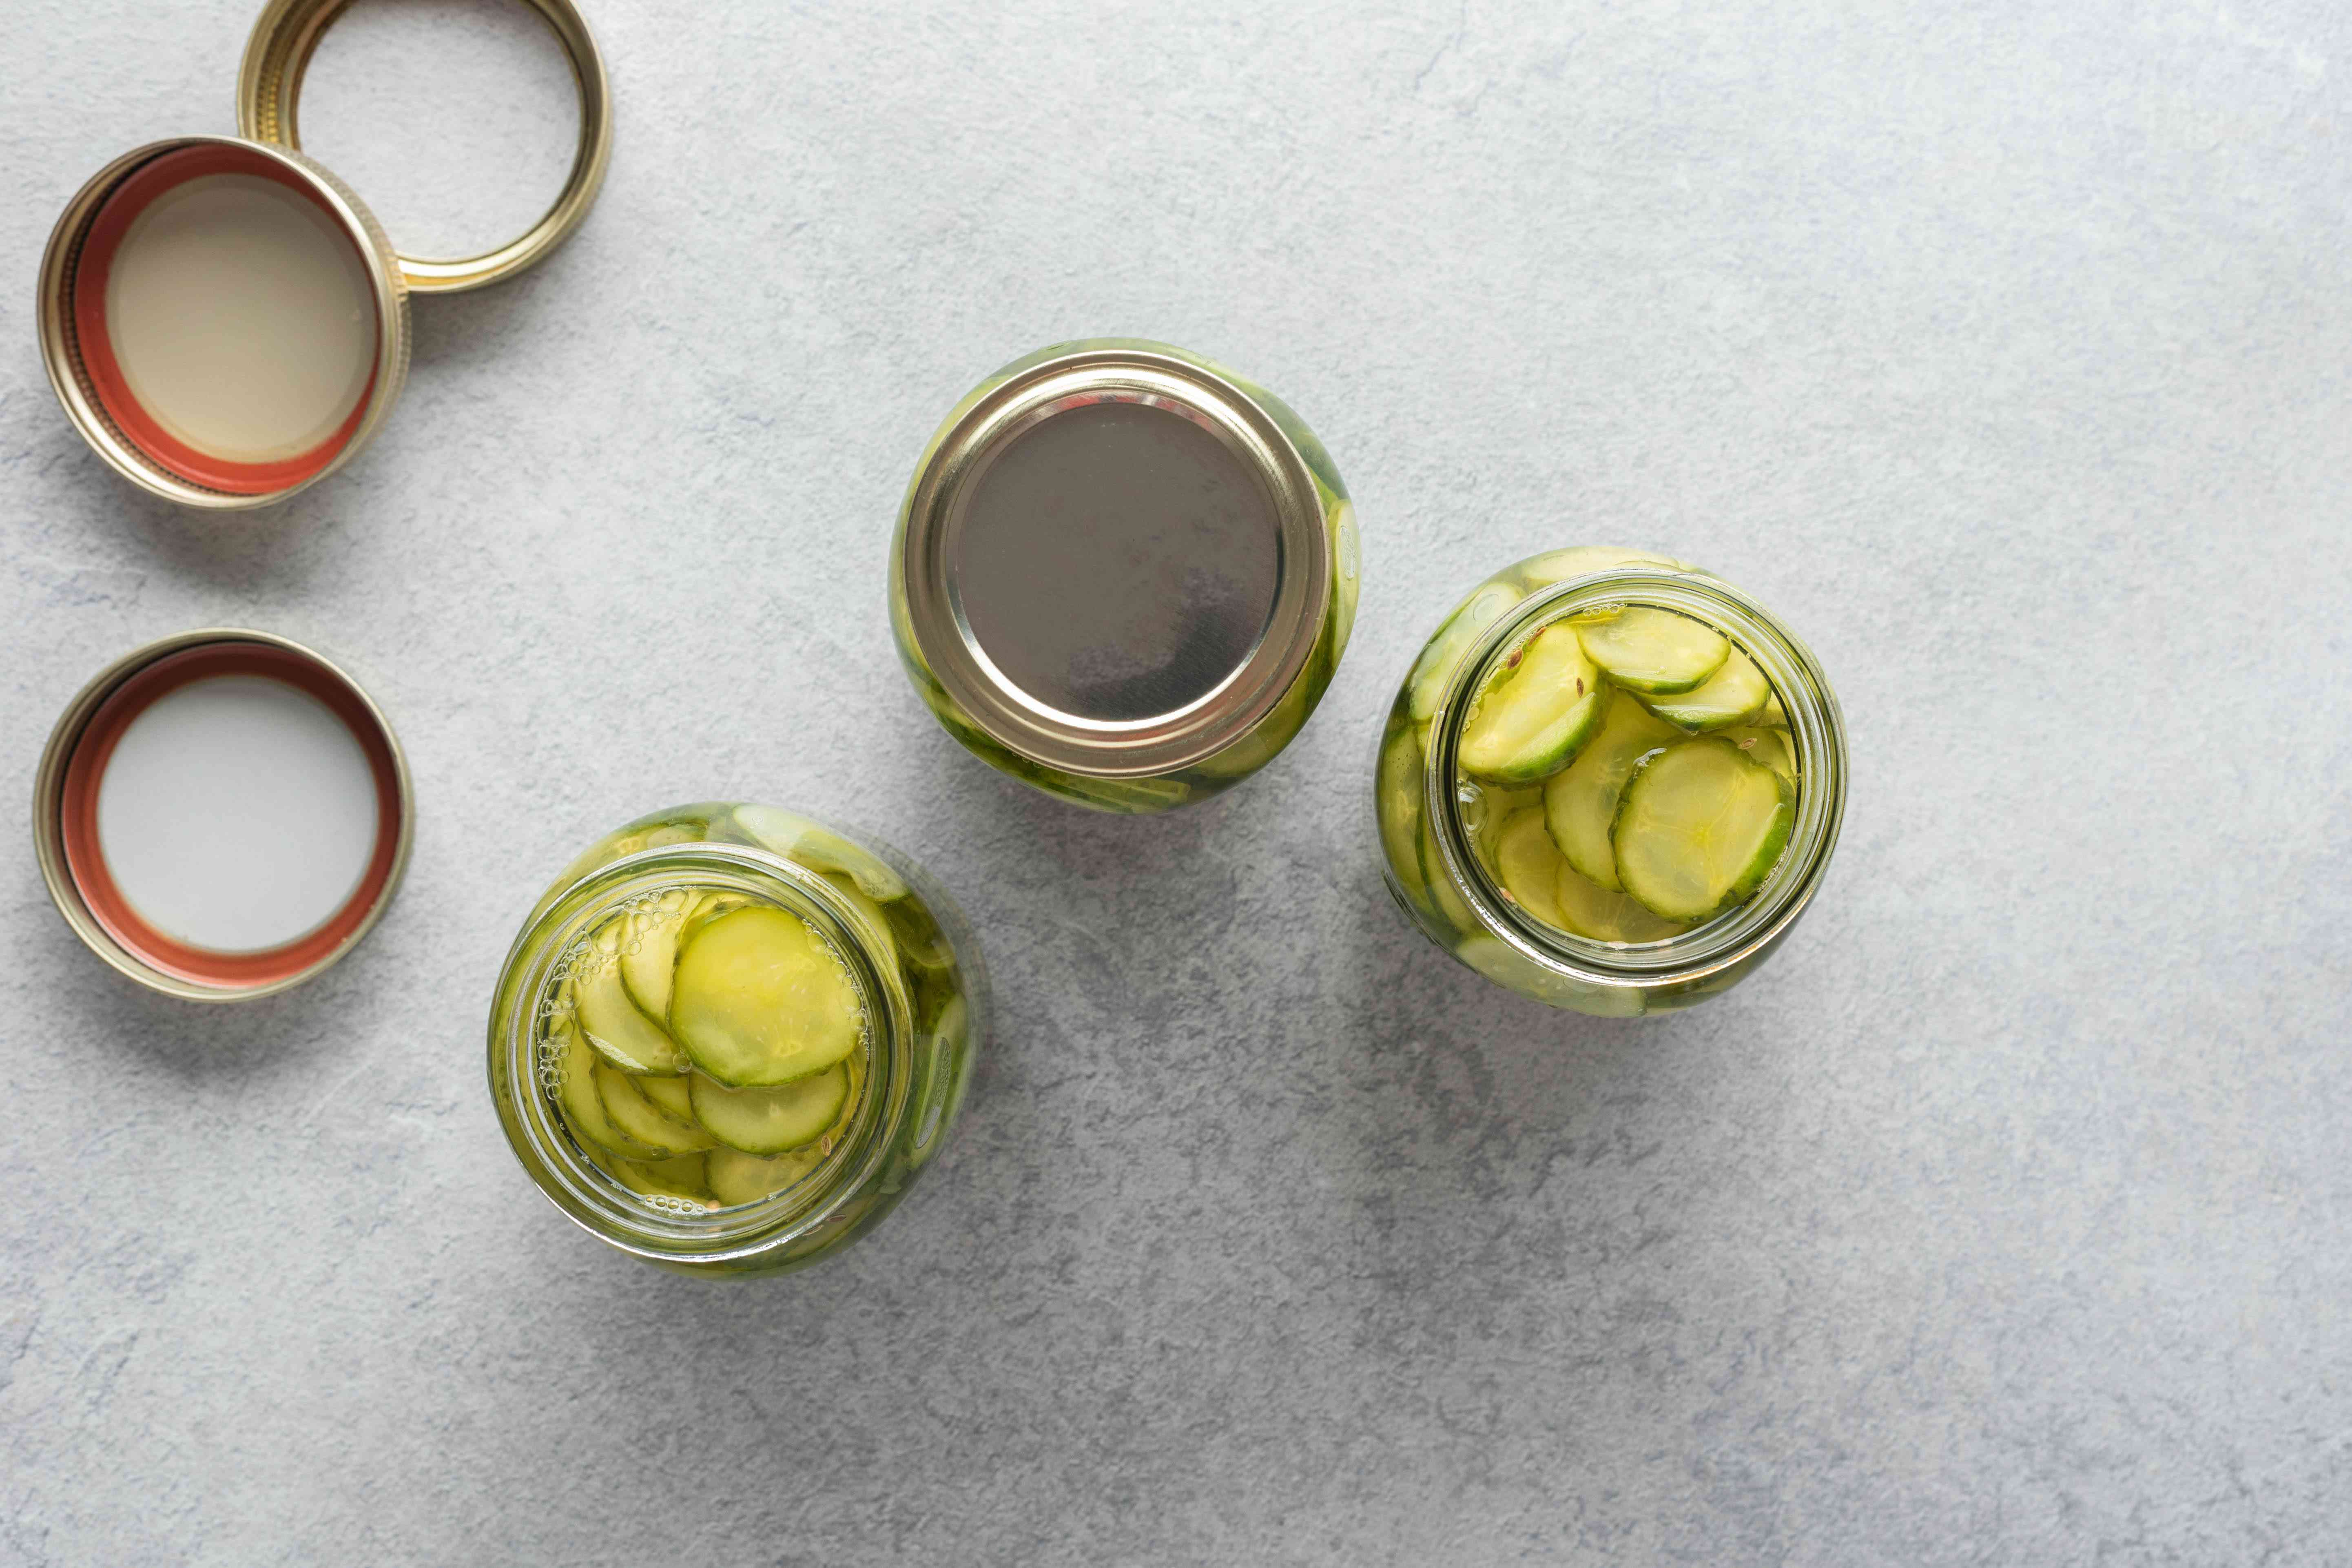 hot vinegar mixture added to the cans with cucumbers